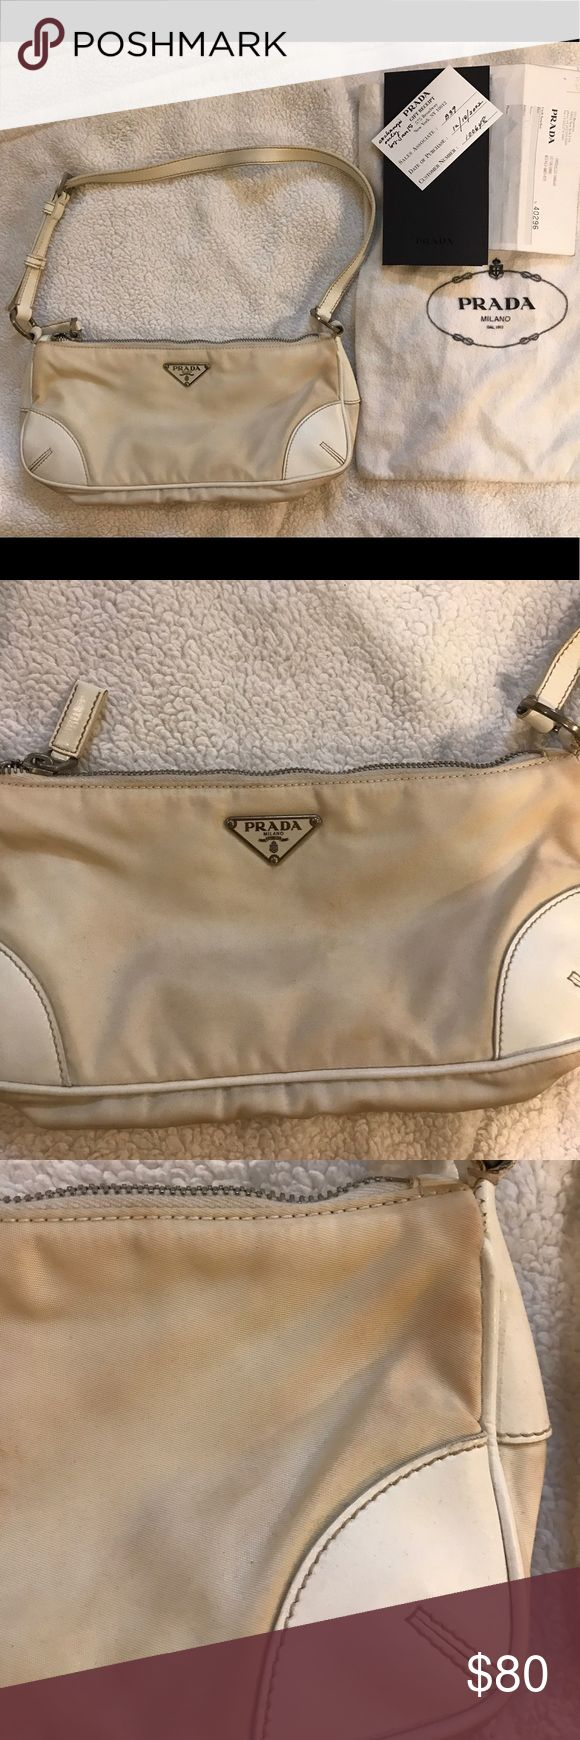 Prada bag Prada White classic nylon bag with dust bag and receipt card. This bag was worn to a pool party in Vegas and it got a few of stain marks on the outside part mostly on the back side of the bag. Inside of the bag is spotless no odor. leather strap perfect . See all photos . This is a Prada classic bag! Prada Bags Shoulder Bags